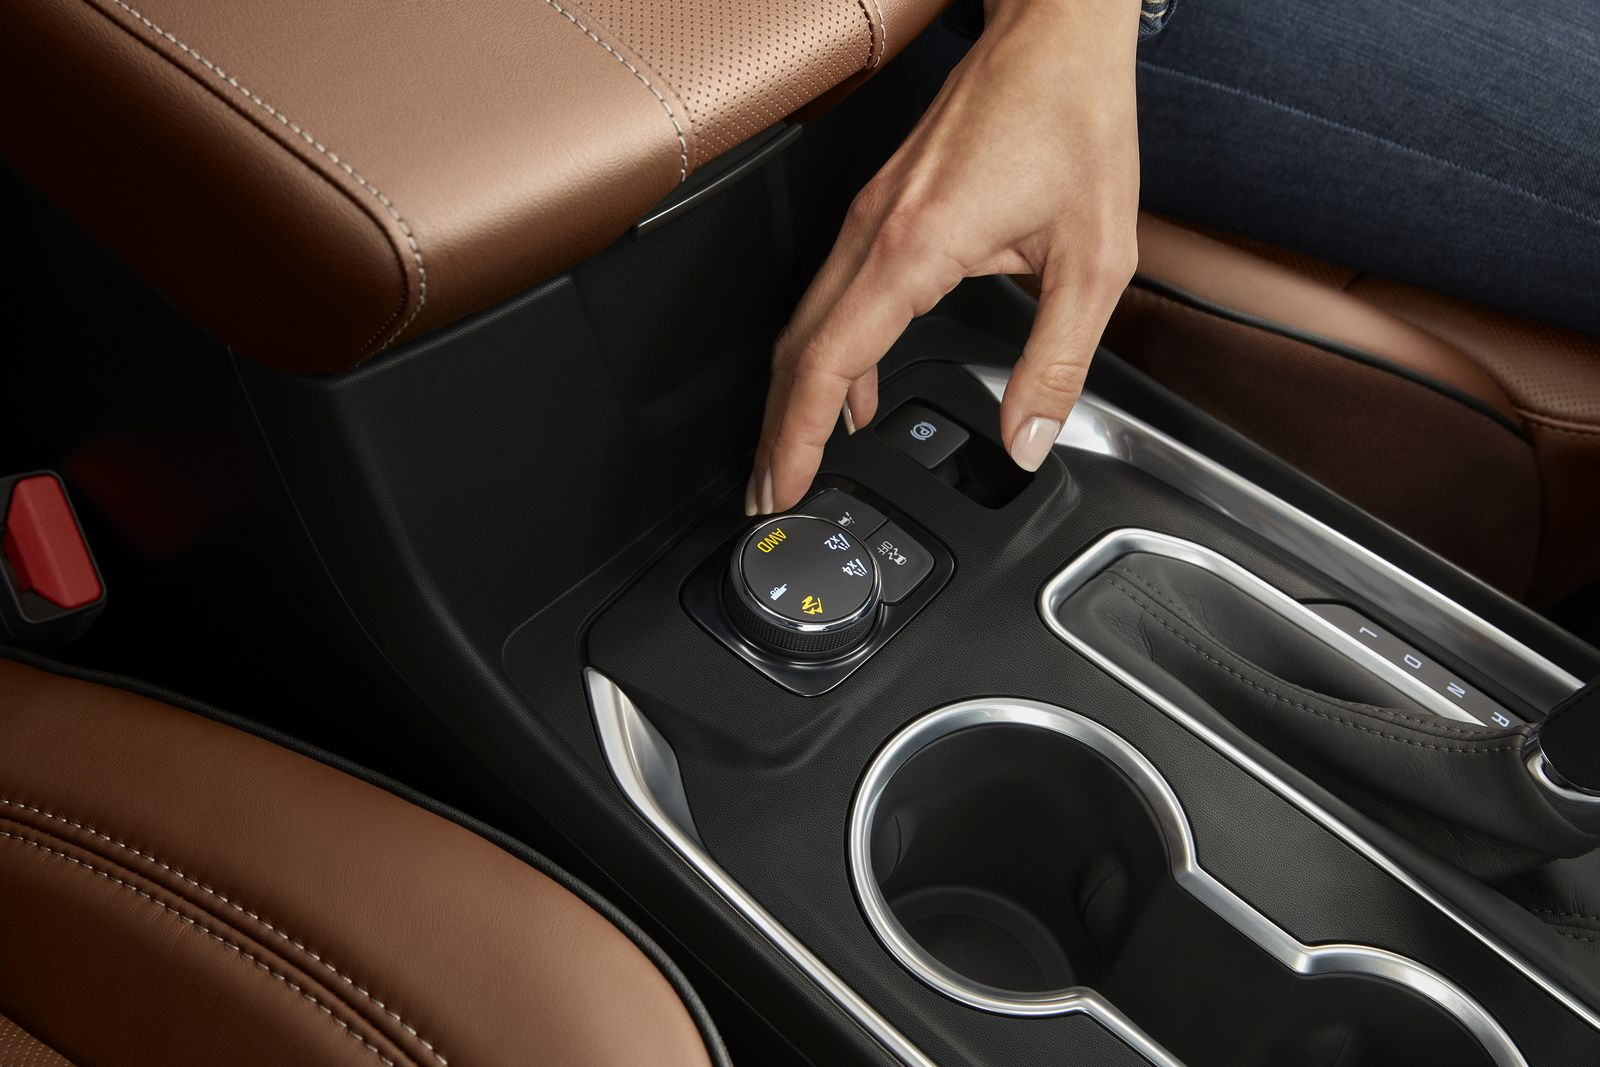 New Traction Mode Select is standard on all Traverse models and allows the driver to make real-time adjustments to the vehicle's driving mode to account for varying road conditions. On available AWD models, it also allows the system to be completely disconnected from the rear axle, which helps save fuel and enhances refinement.